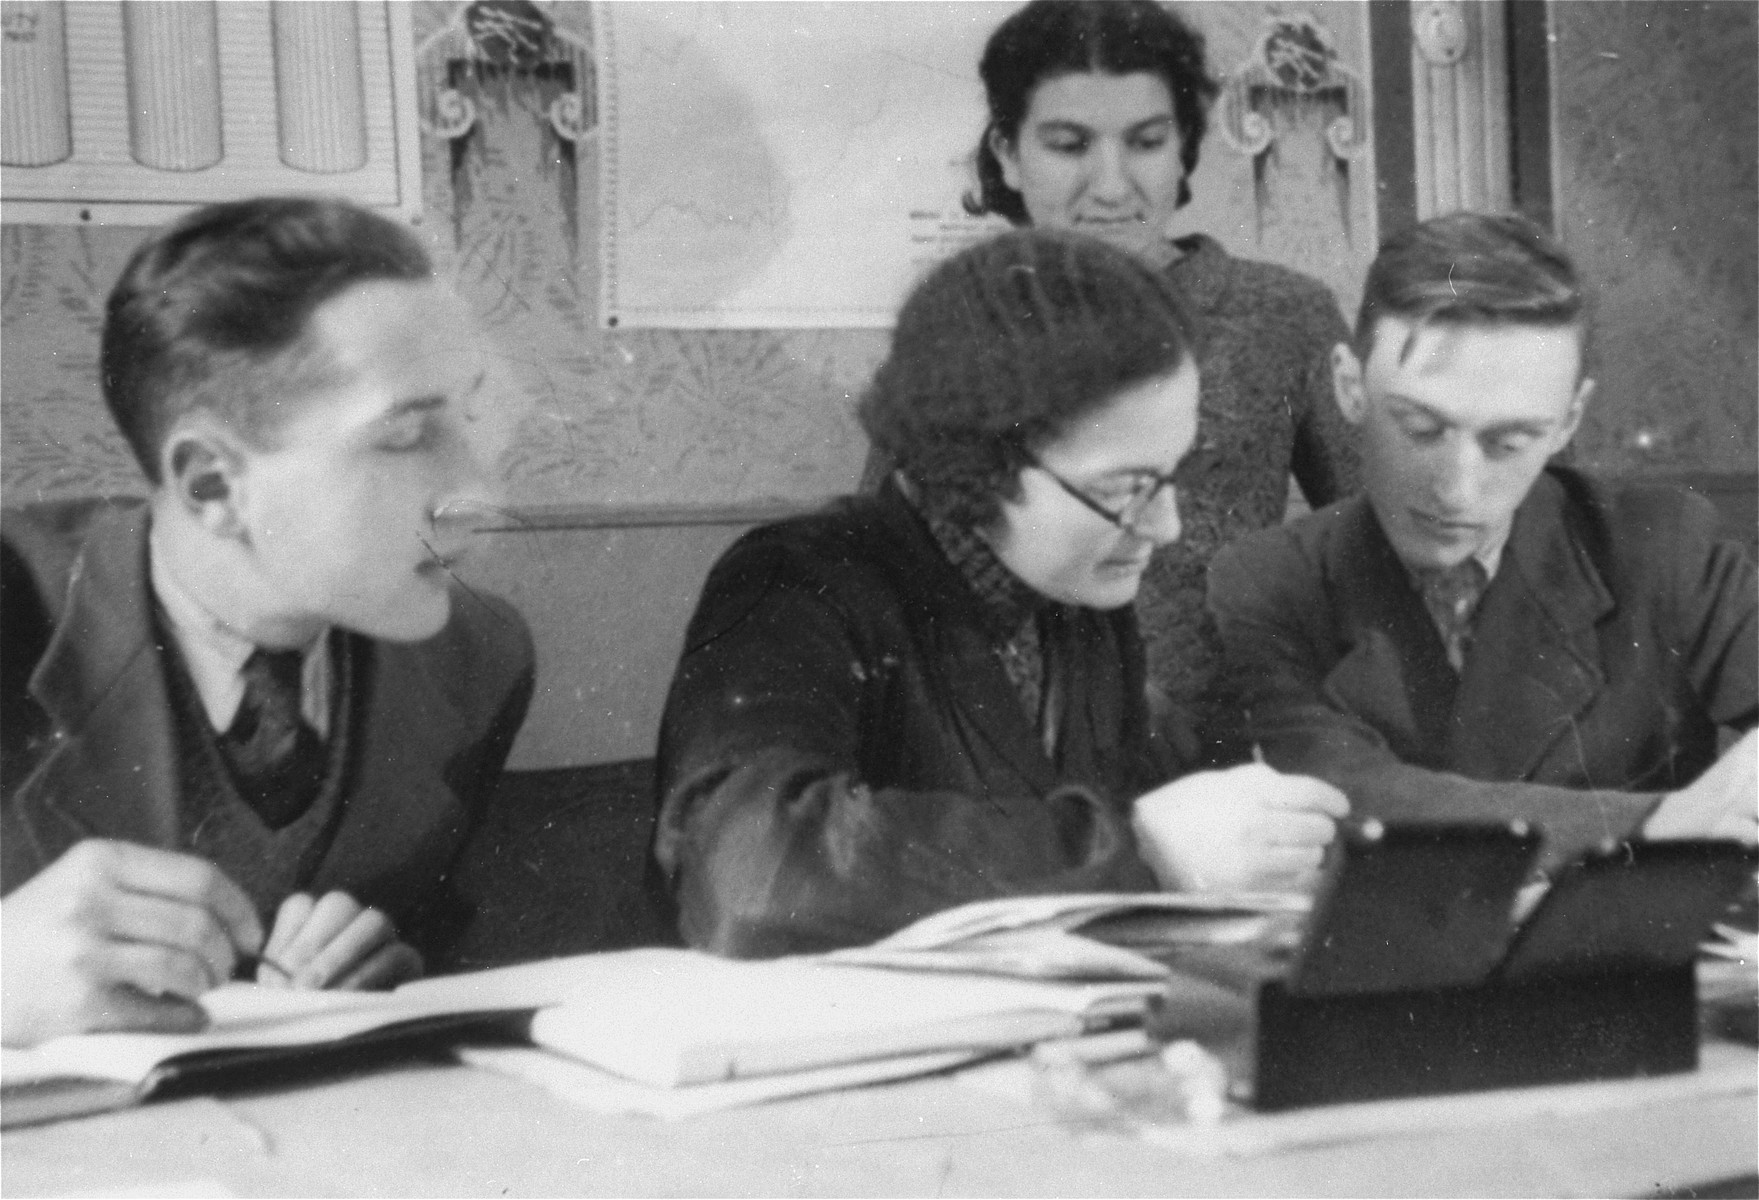 Member of the ghetto administration at work in the office of the Judenrat in the Kielce ghetto.  This photo was one the images included in an official album prepared by the Judenrat of the Kielce ghetto in 1942.